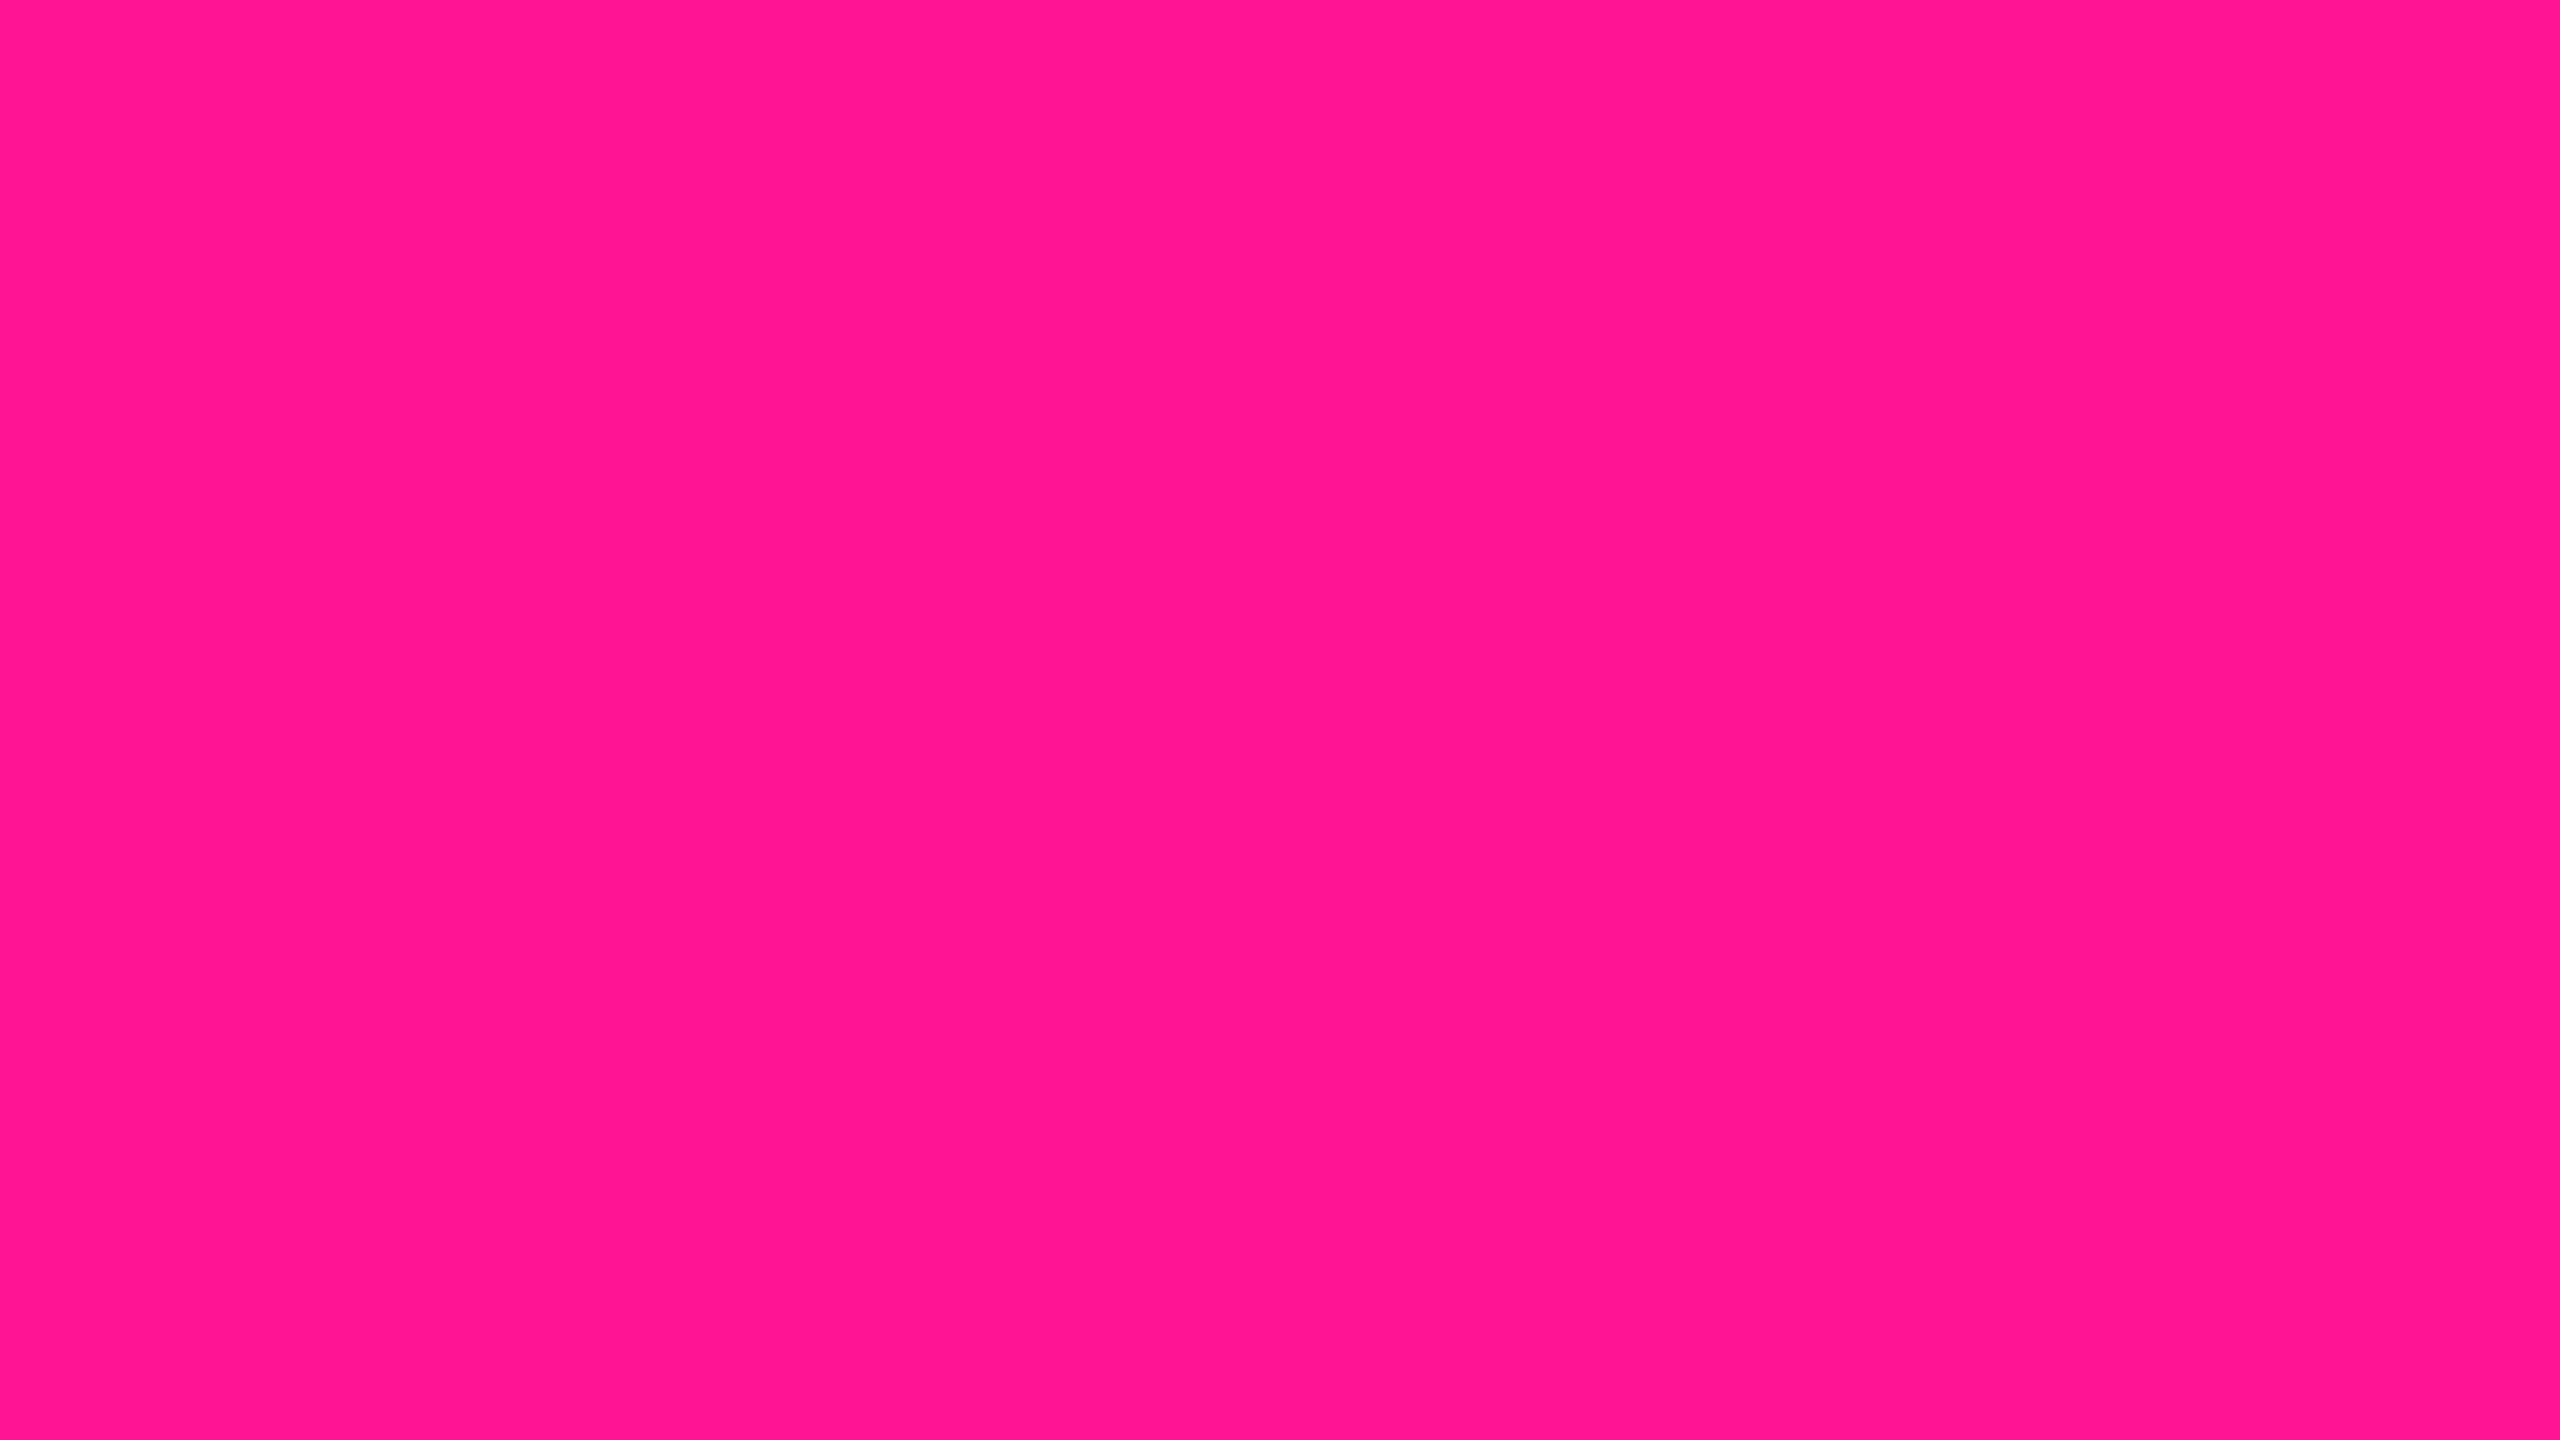 2560x1440 Free download 2560x1440 Deep Pink Solid Color Background ...